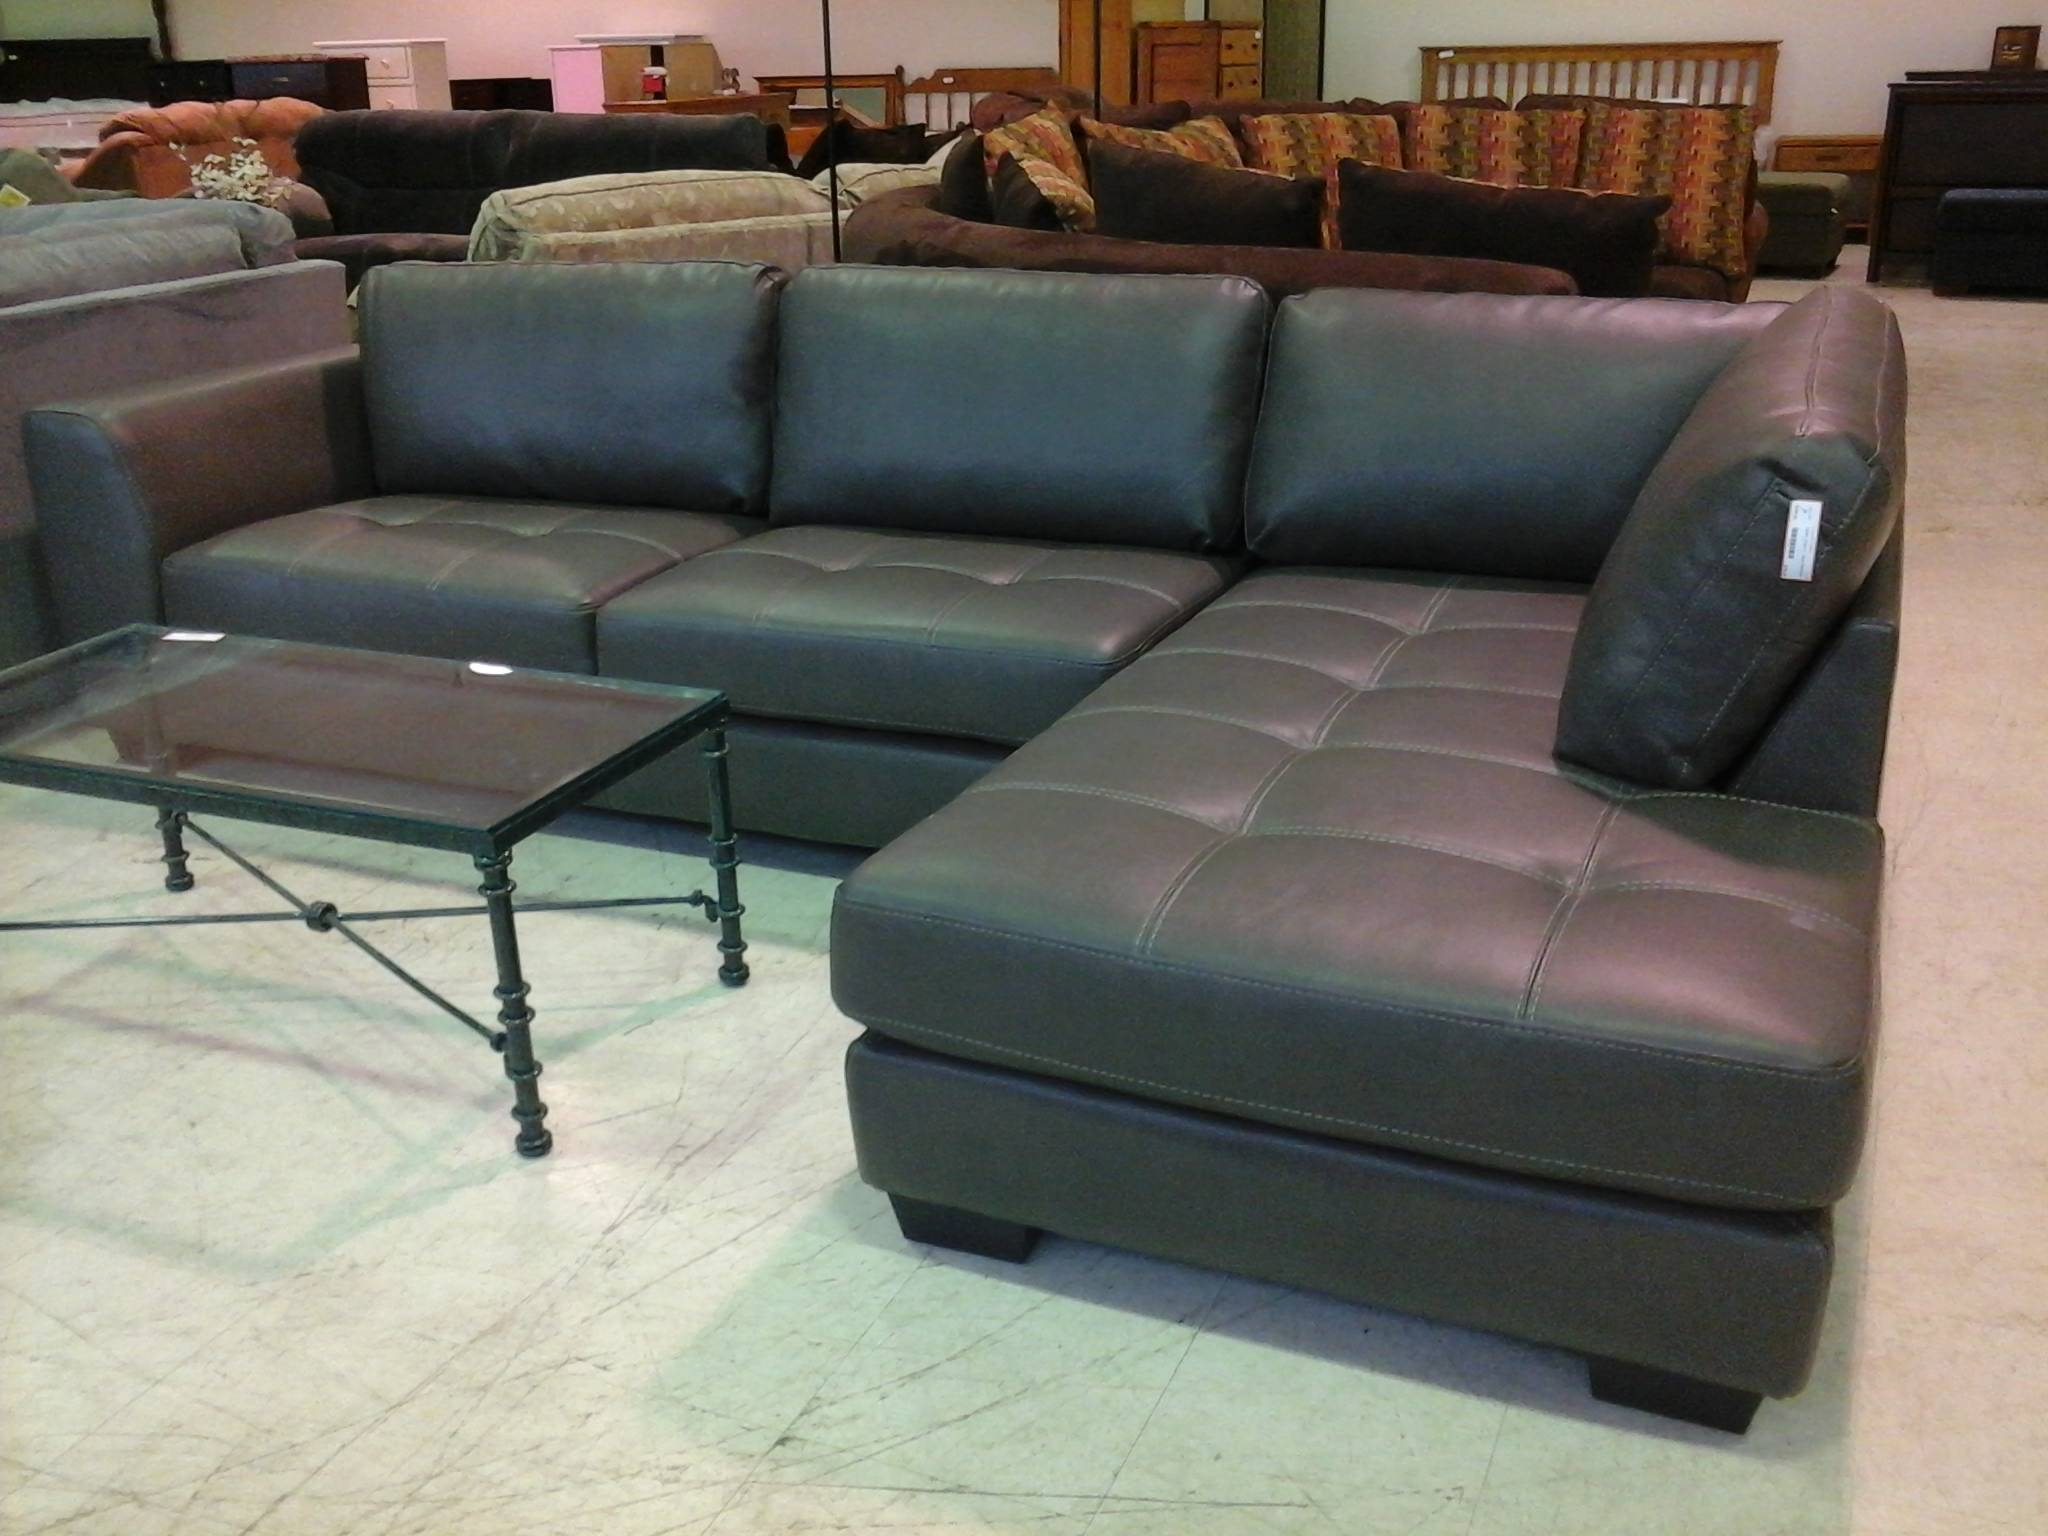 Explore Gallery of Burnt Orange Leather Sectional Sofas Showing